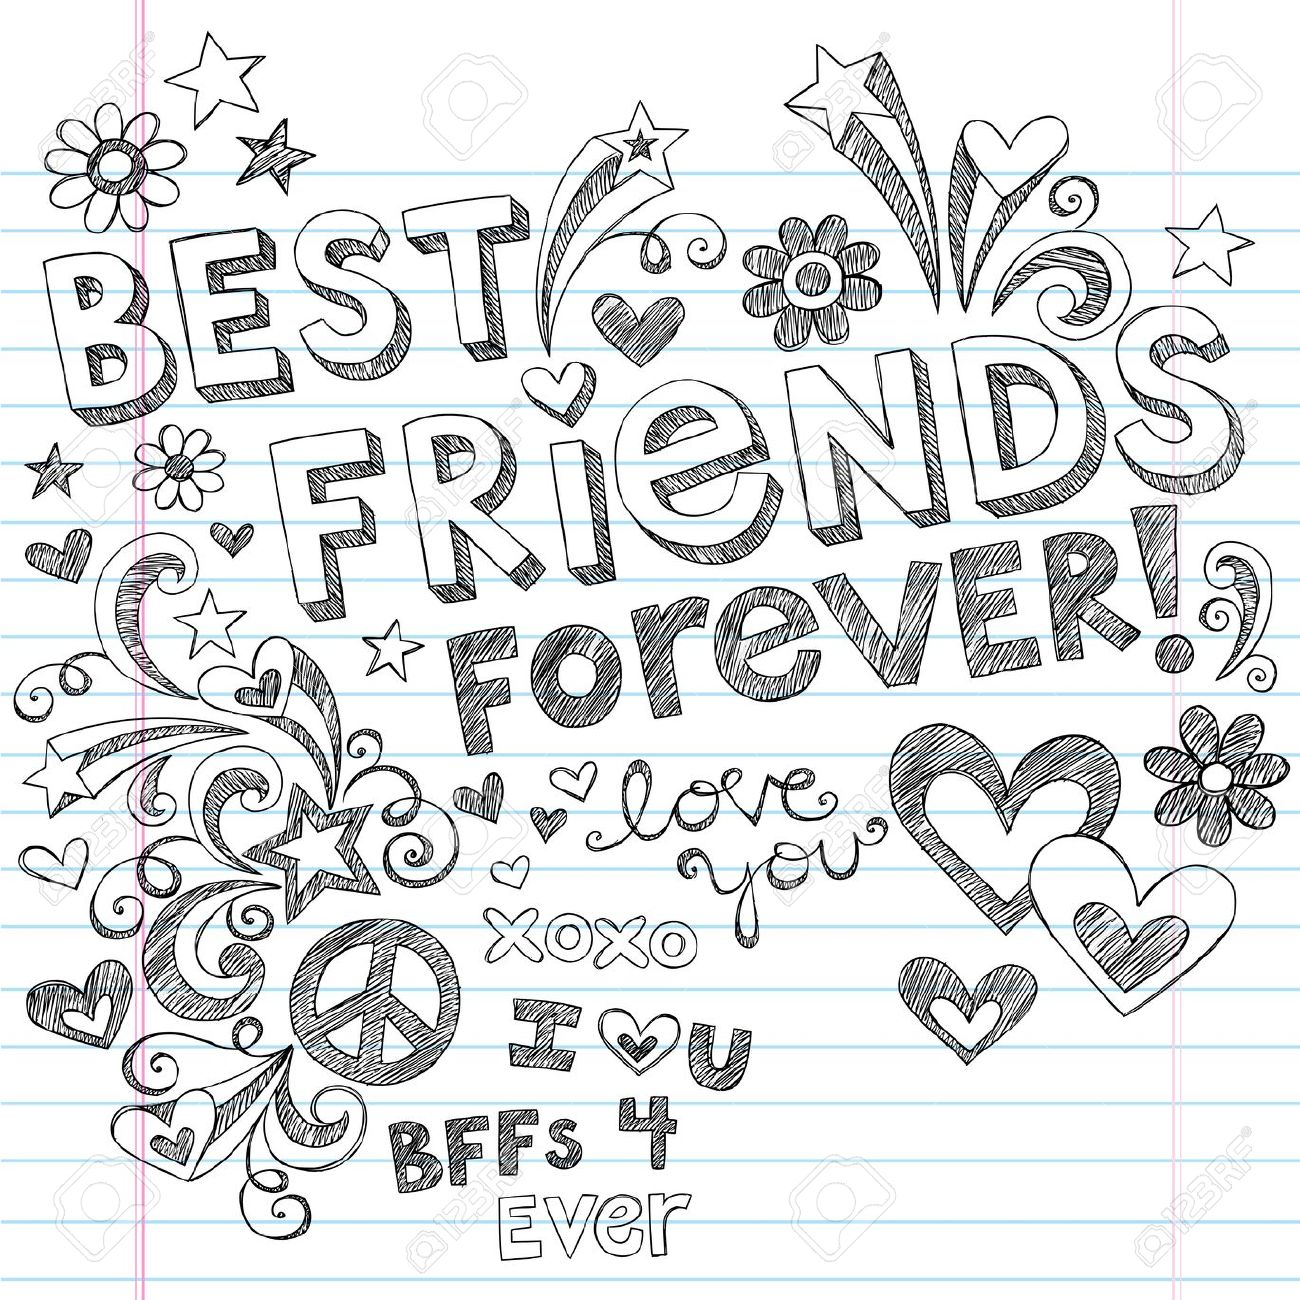 I Love You Bestfriend Quotes 47 Wonderful Best Friend Forever Pictures